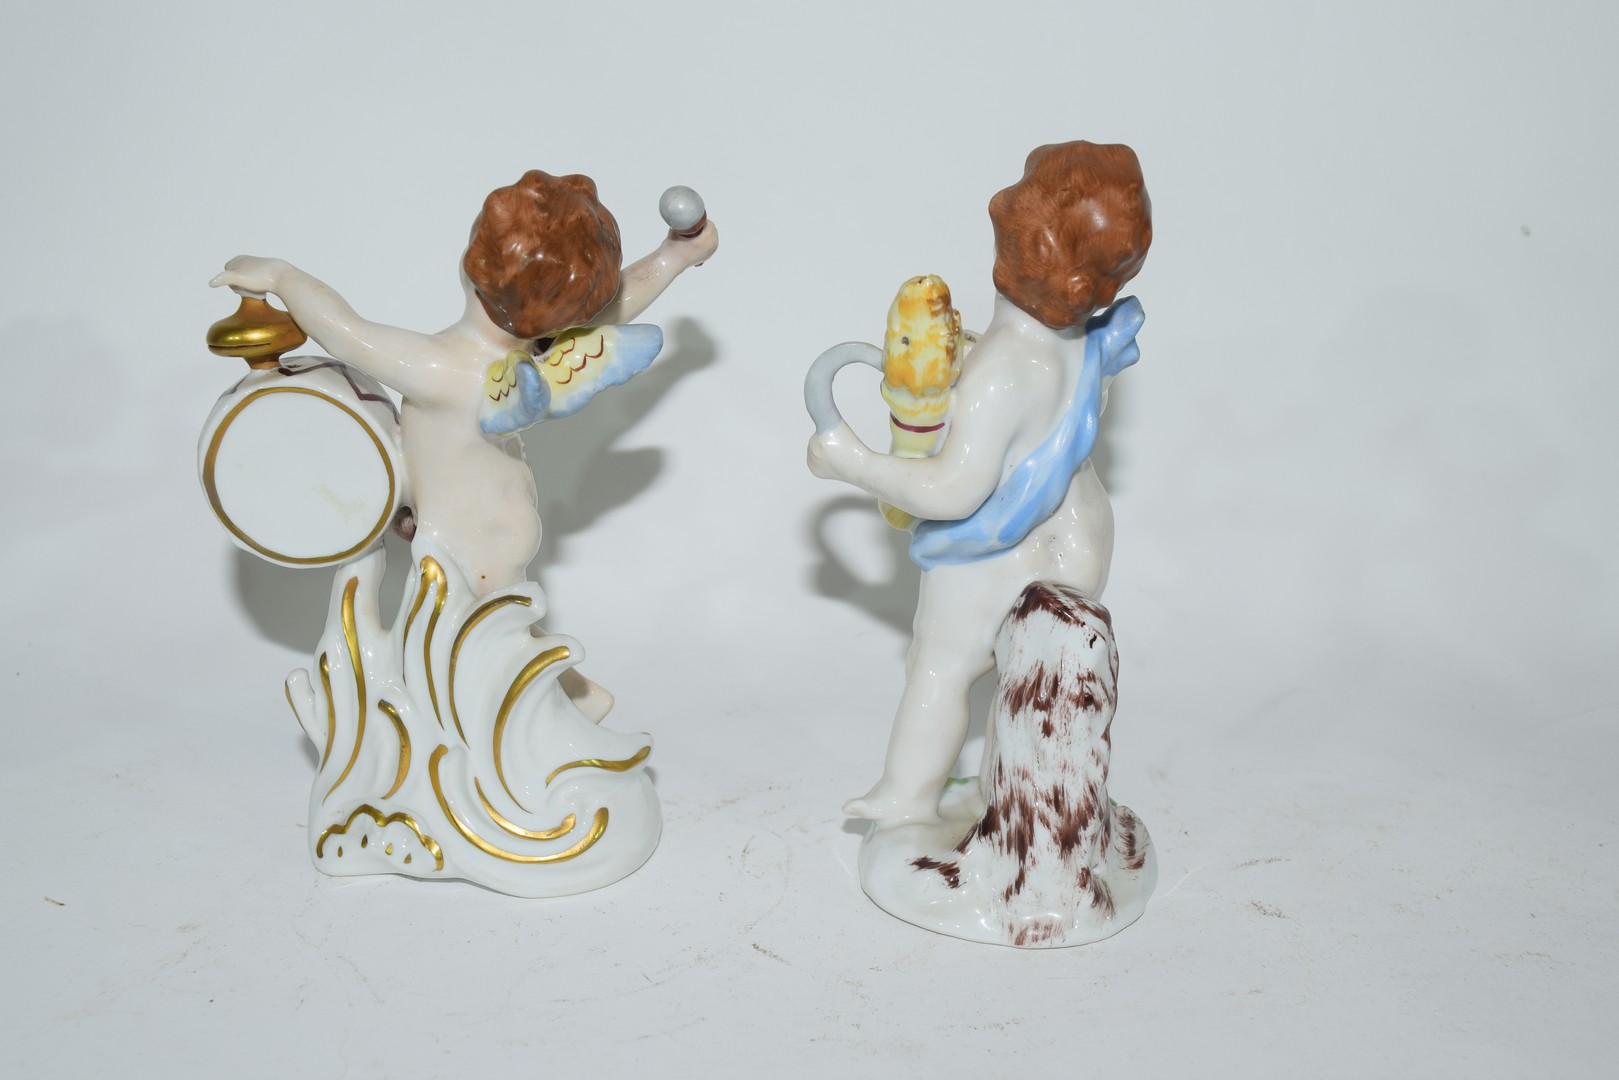 Group of Naples porcelain figures - Image 5 of 7